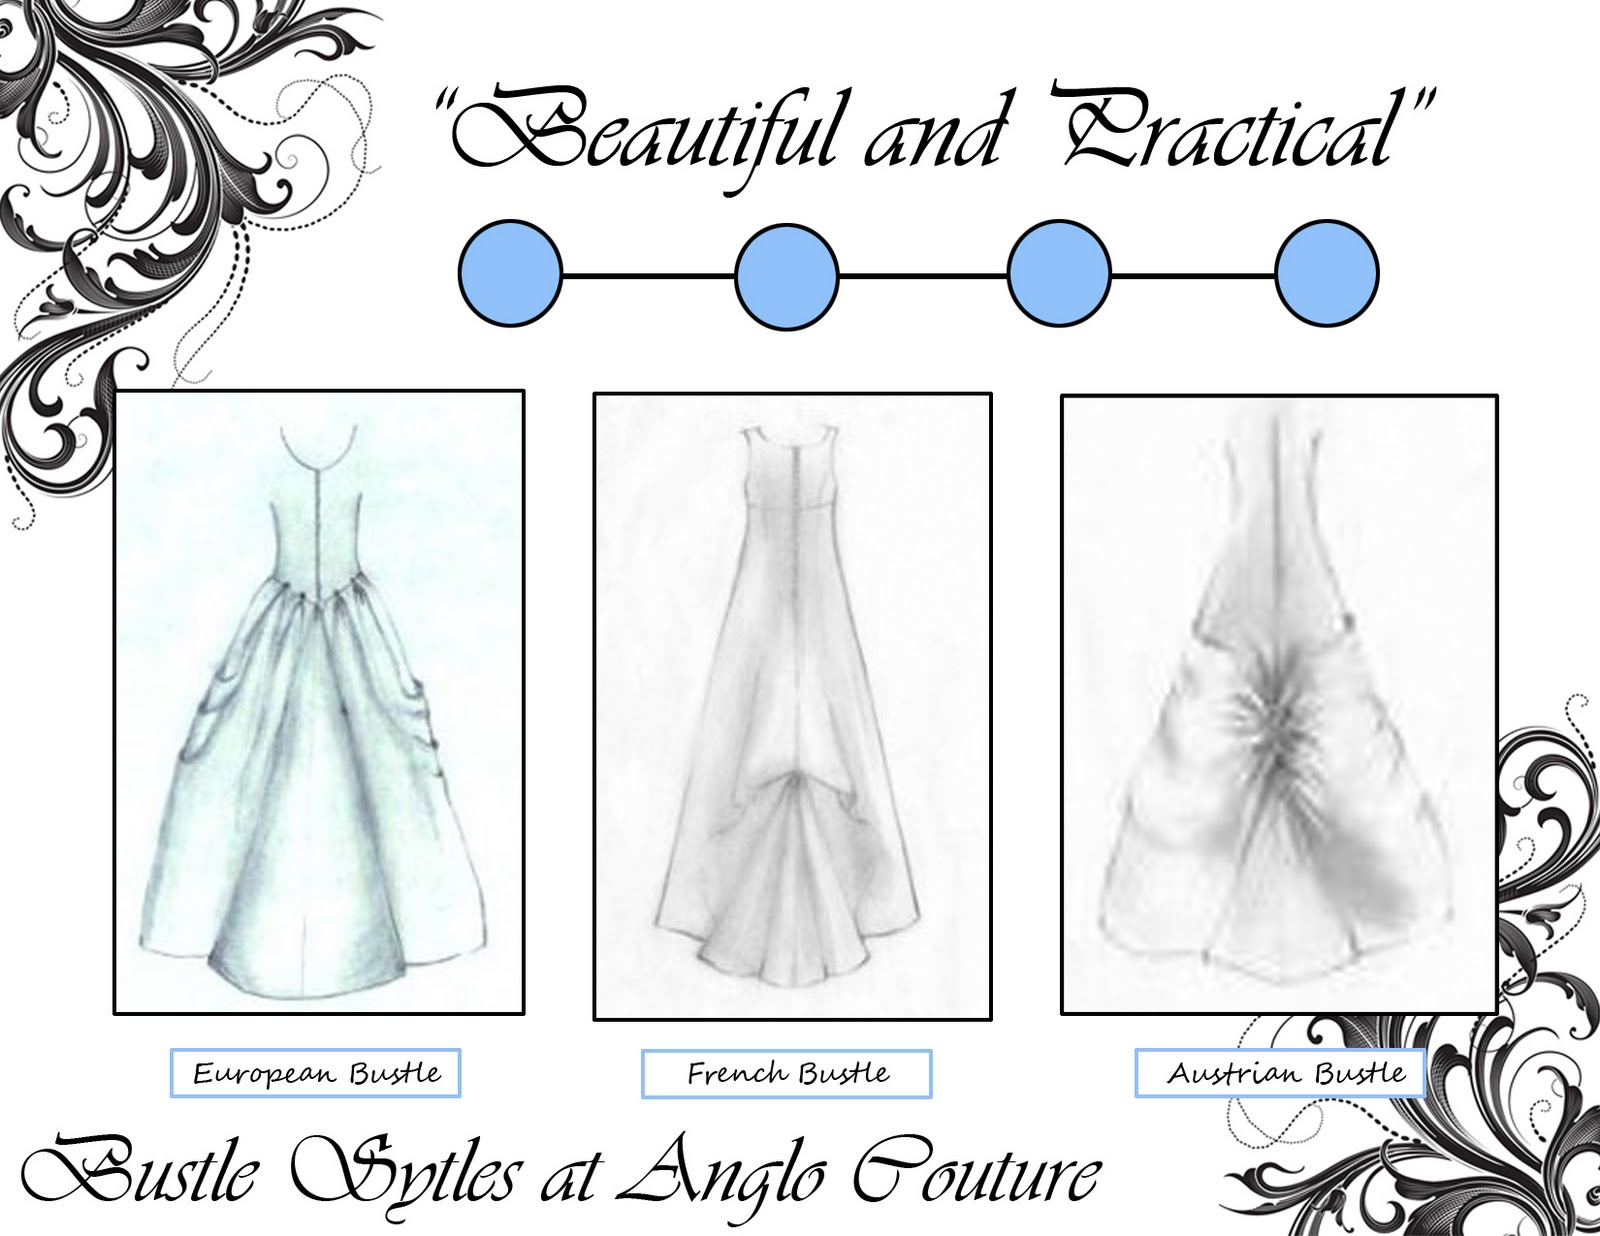 Anglo Couture Bustle Styles At Anglo Couture